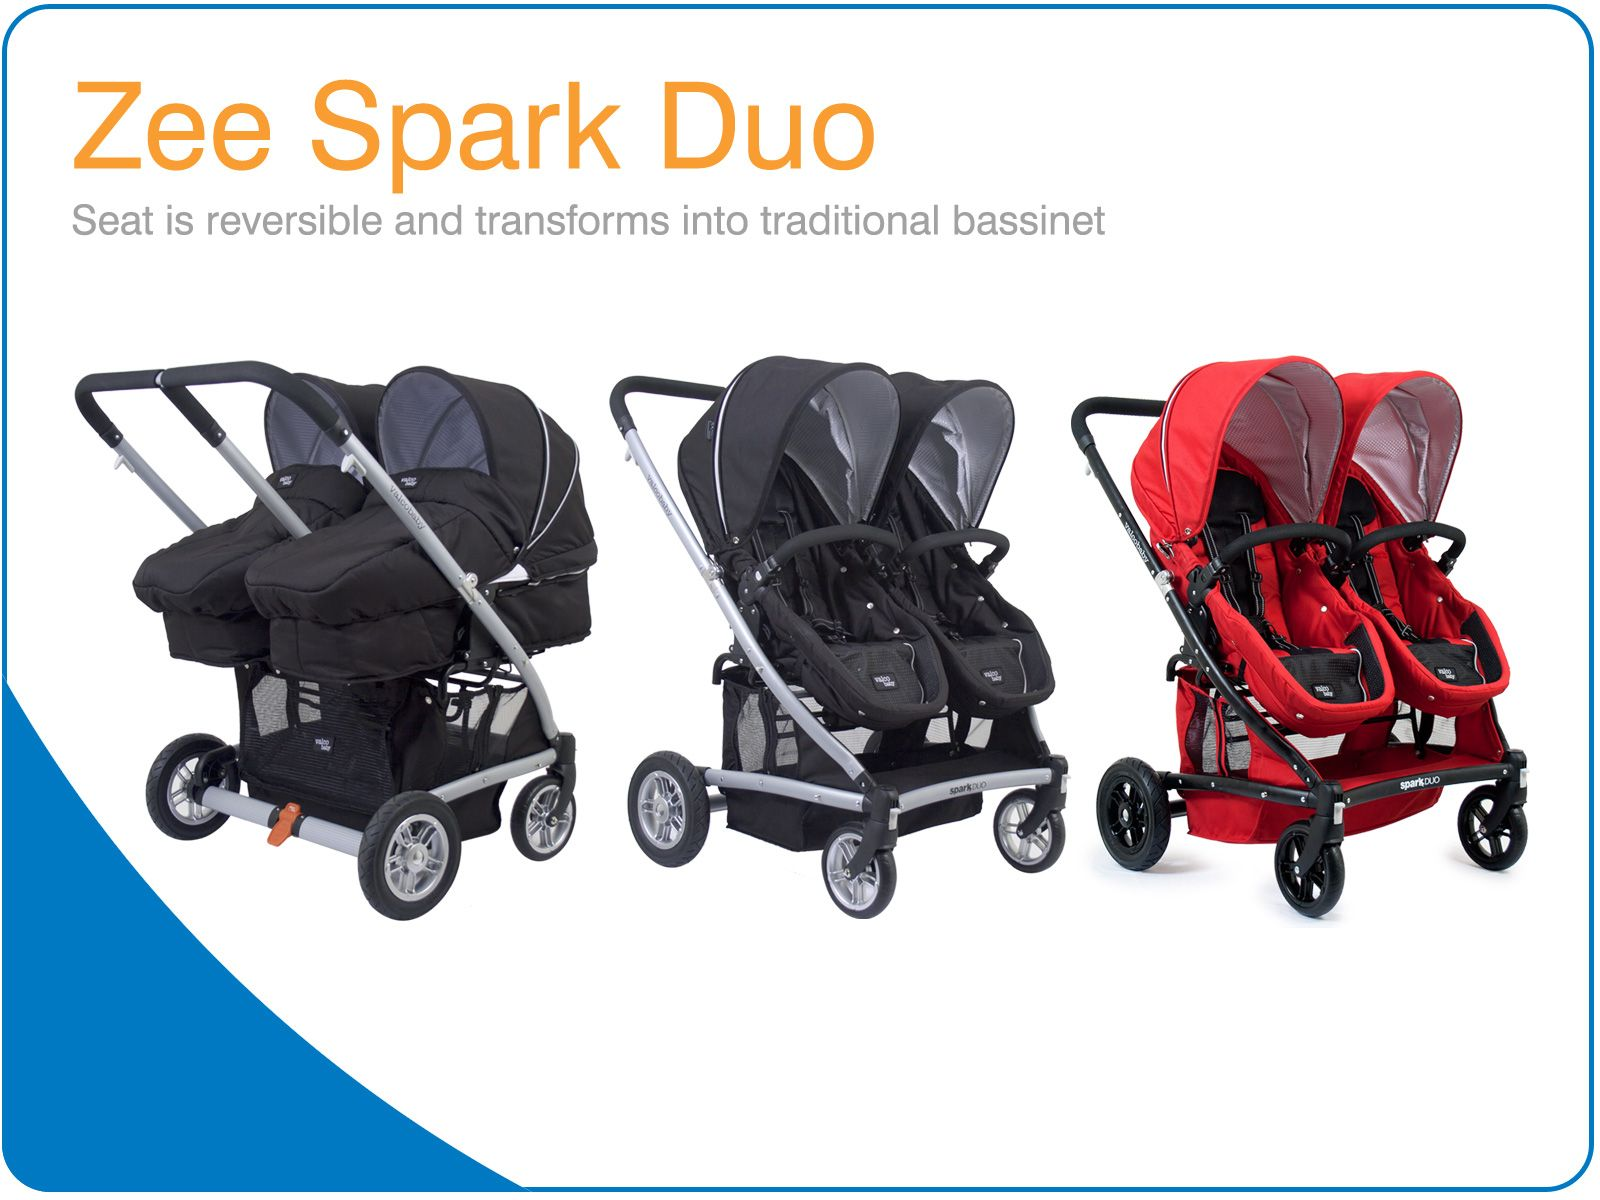 Zee Spark Duo. The newest and most innovative seat in the